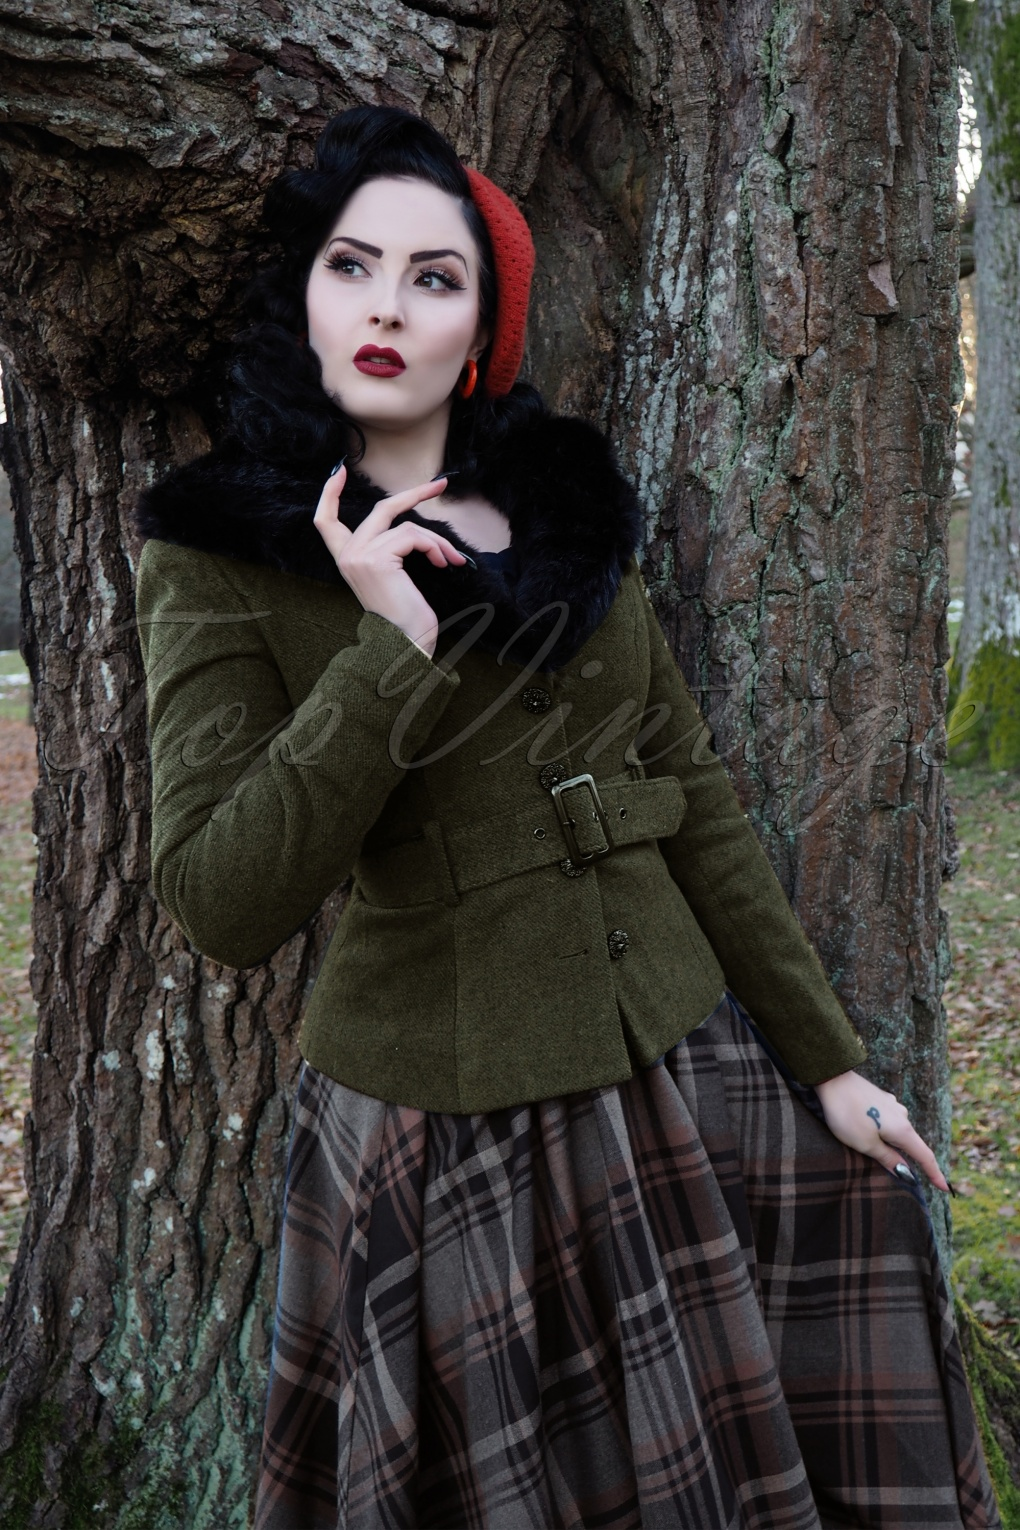 Vintage Coats & Jackets | Retro Coats and Jackets 40s Molly Jacket in Olive Green £100.60 AT vintagedancer.com